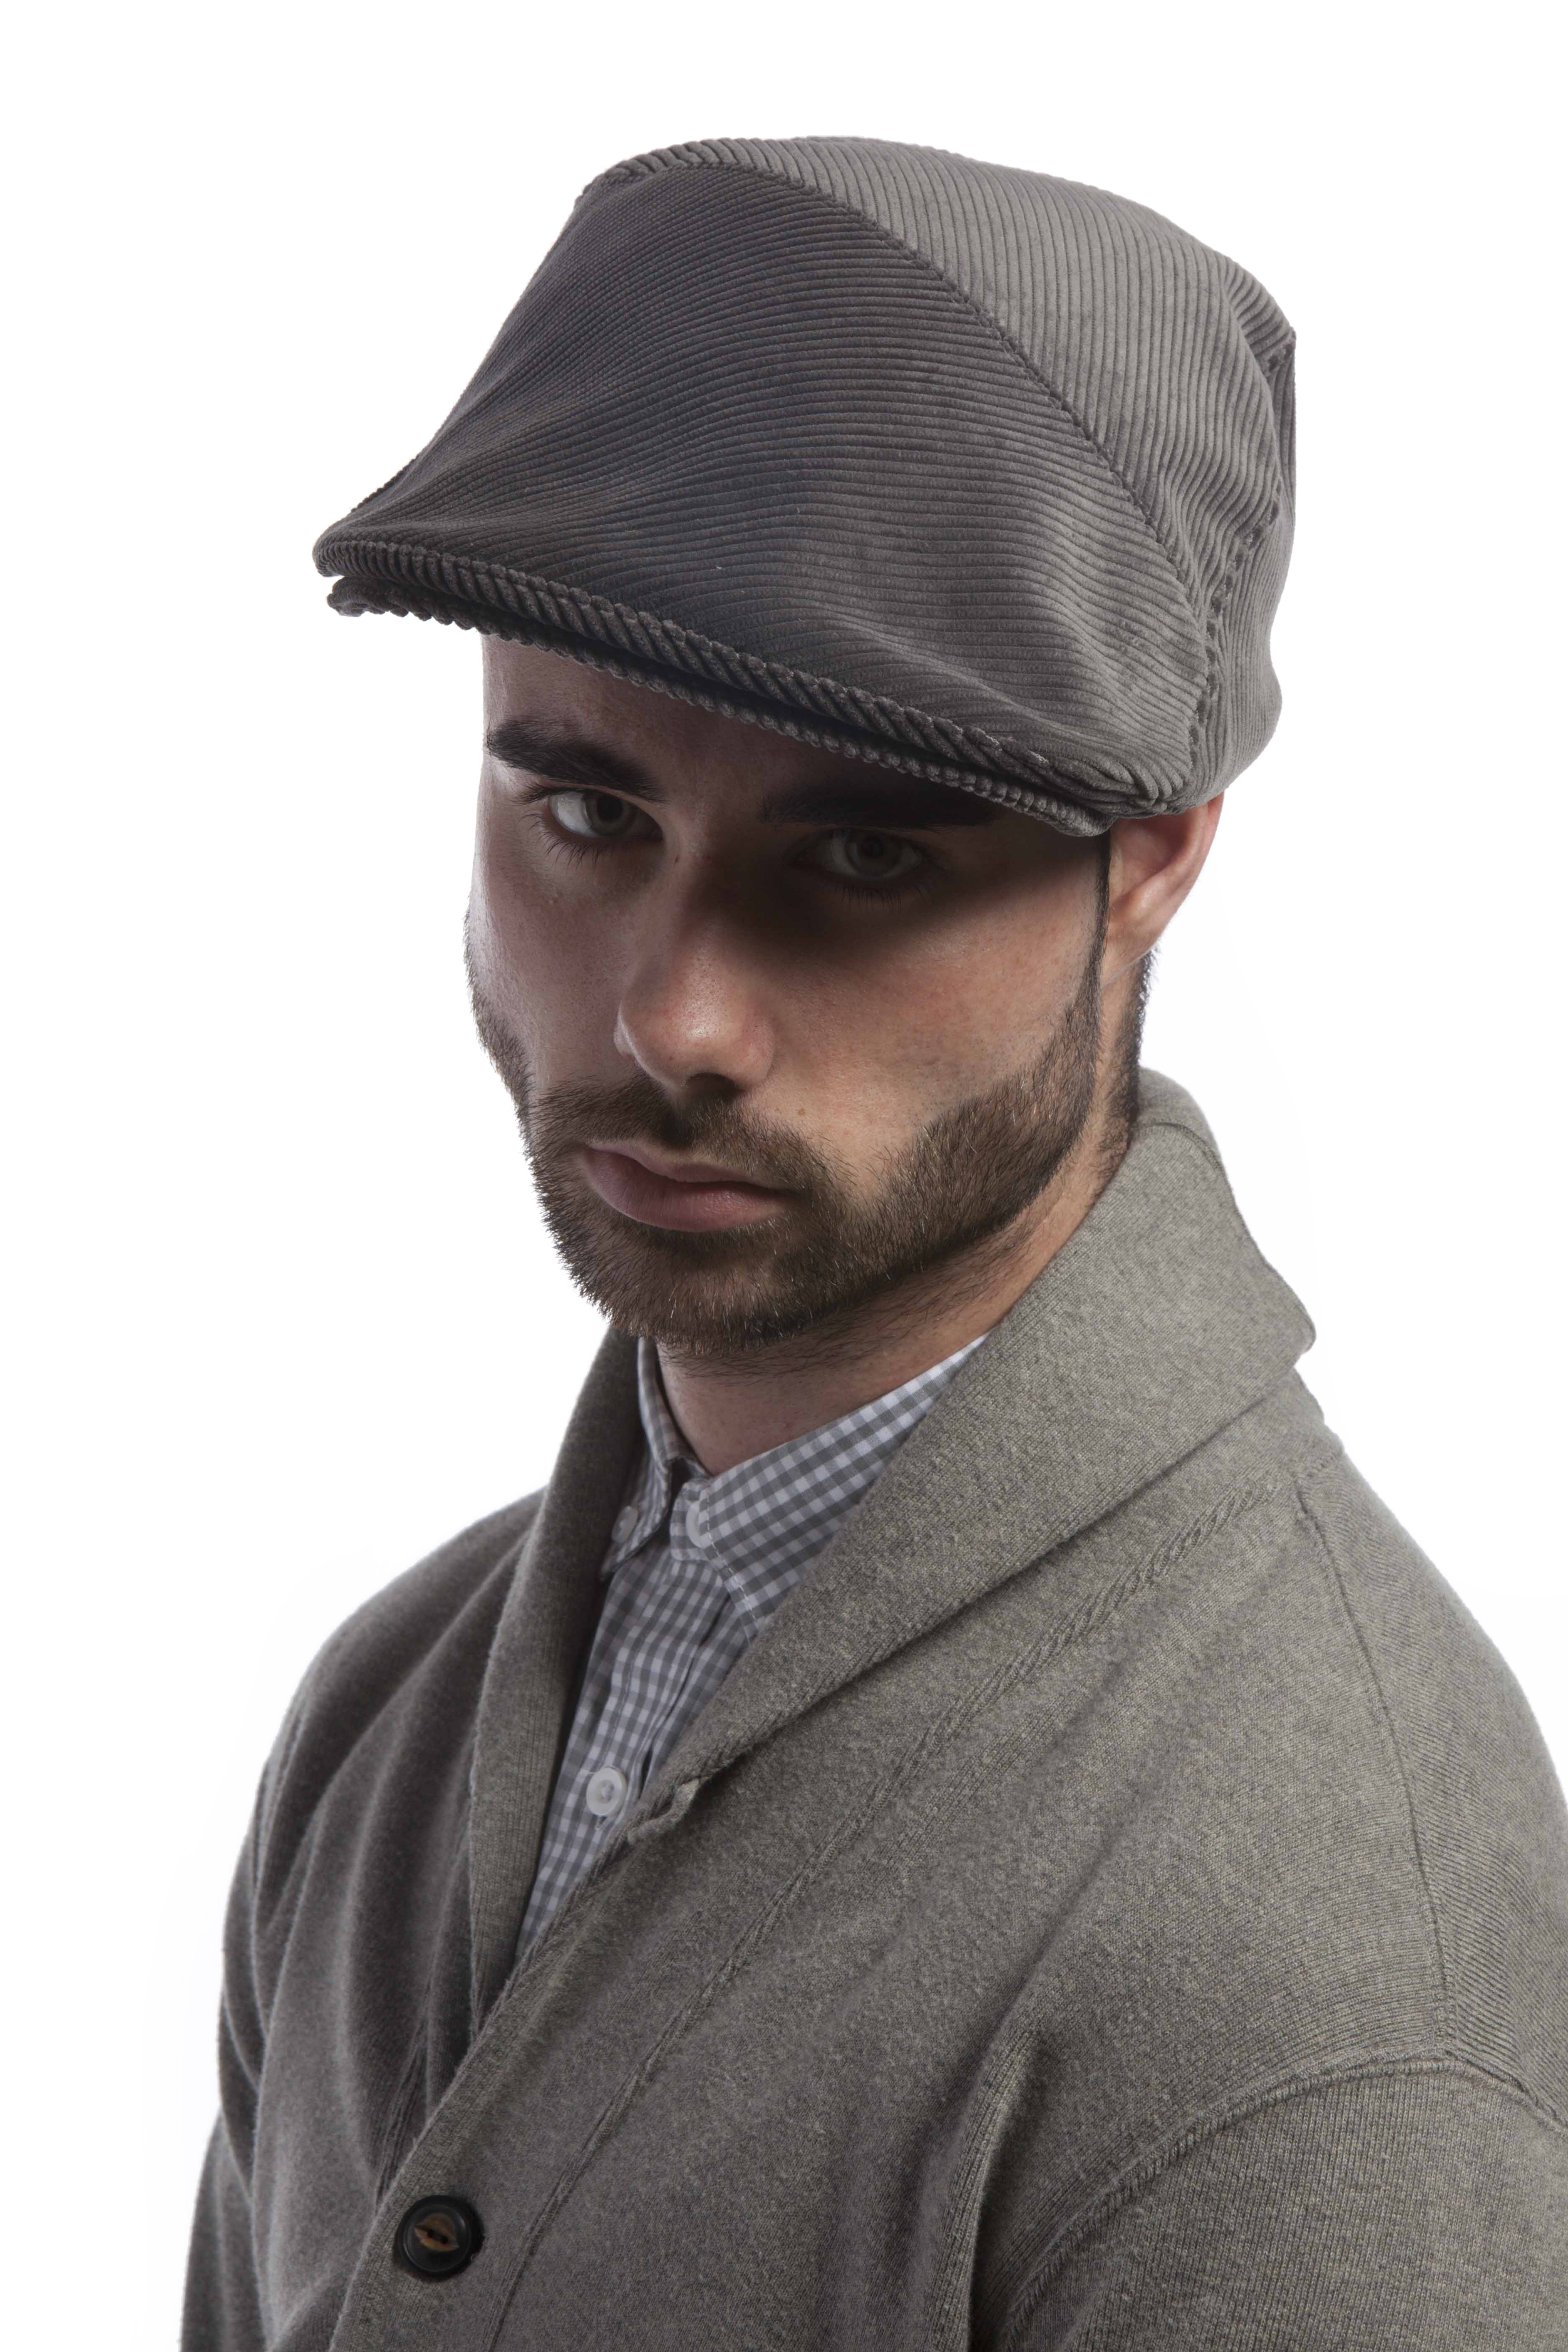 'Stirling' flat cap